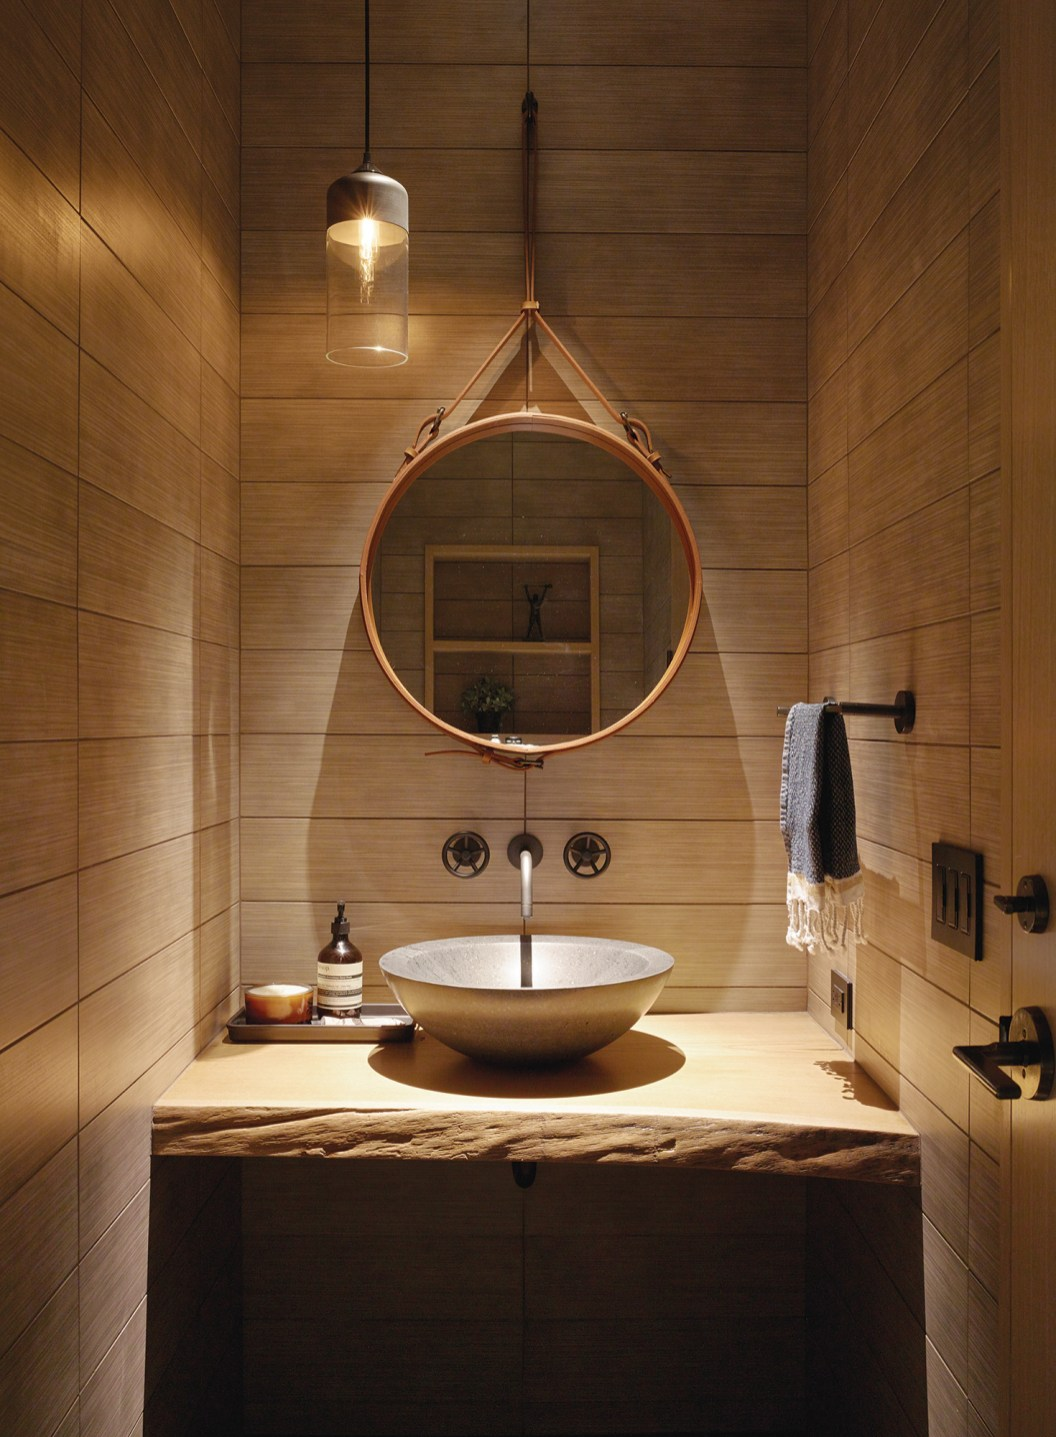 Scandinavian simplicity and mountain living combine in this functional and attractive bath.